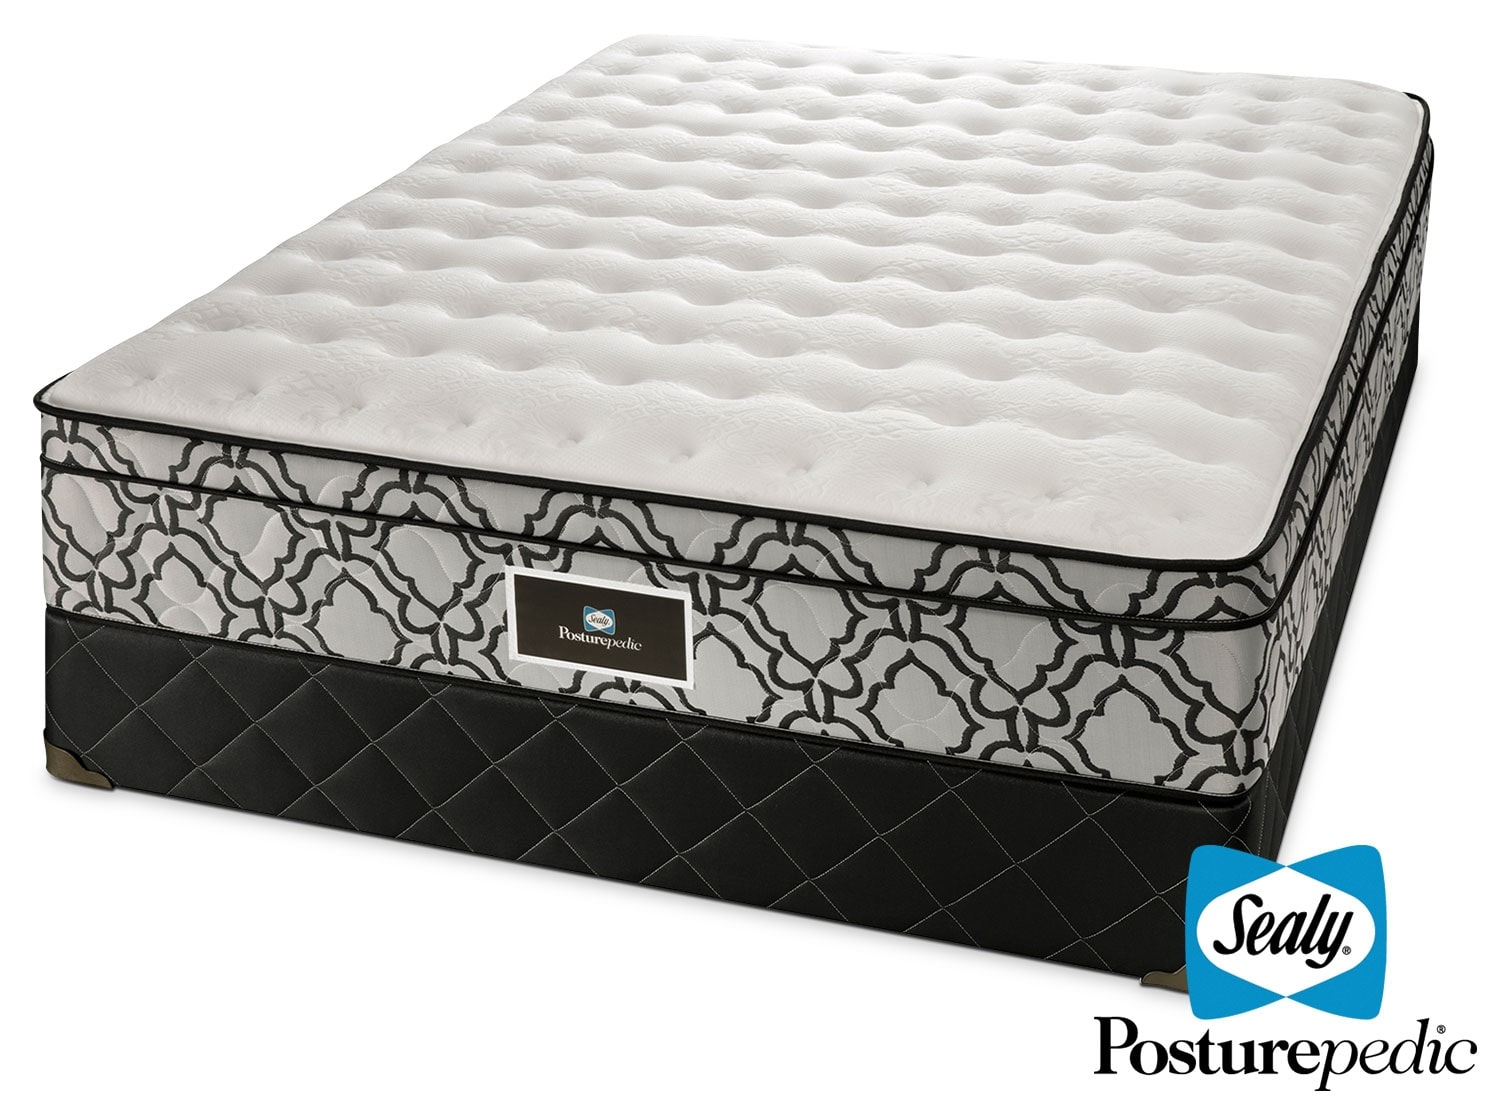 Mattresses and Bedding - Sealy Colosseum Full Mattress/Boxspring Set